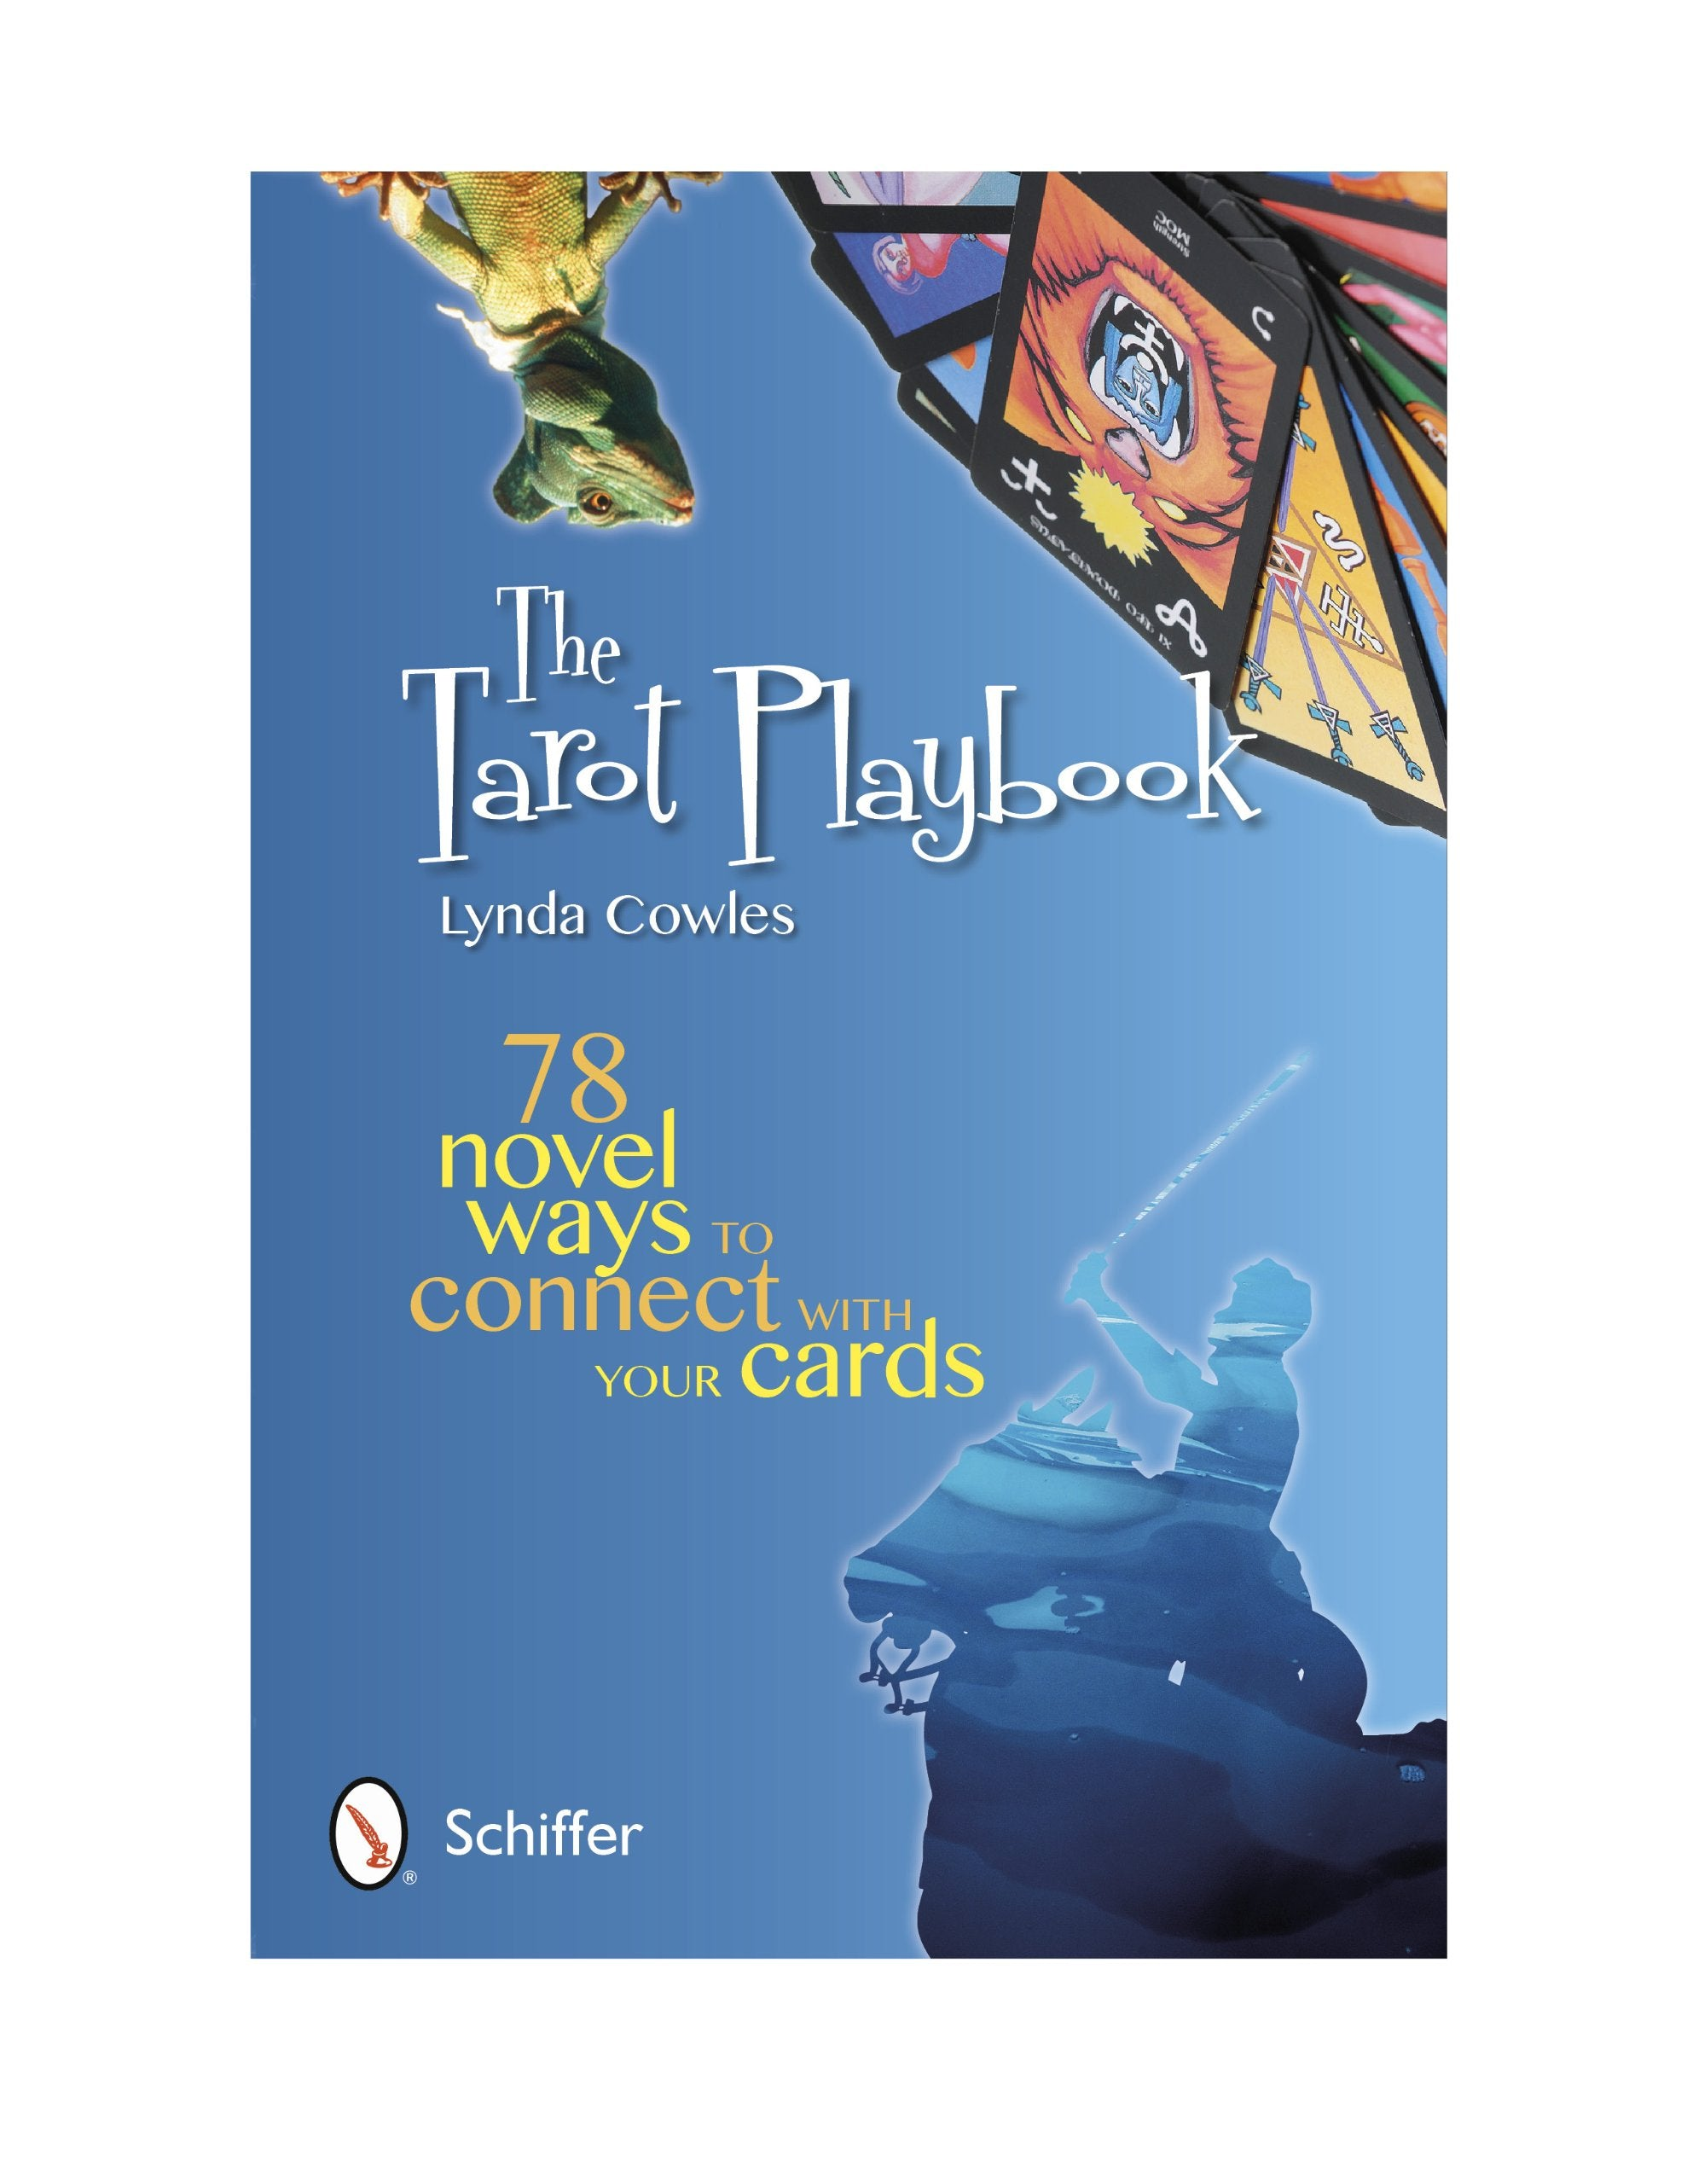 The Tarot Playbook by Lynda Cowles